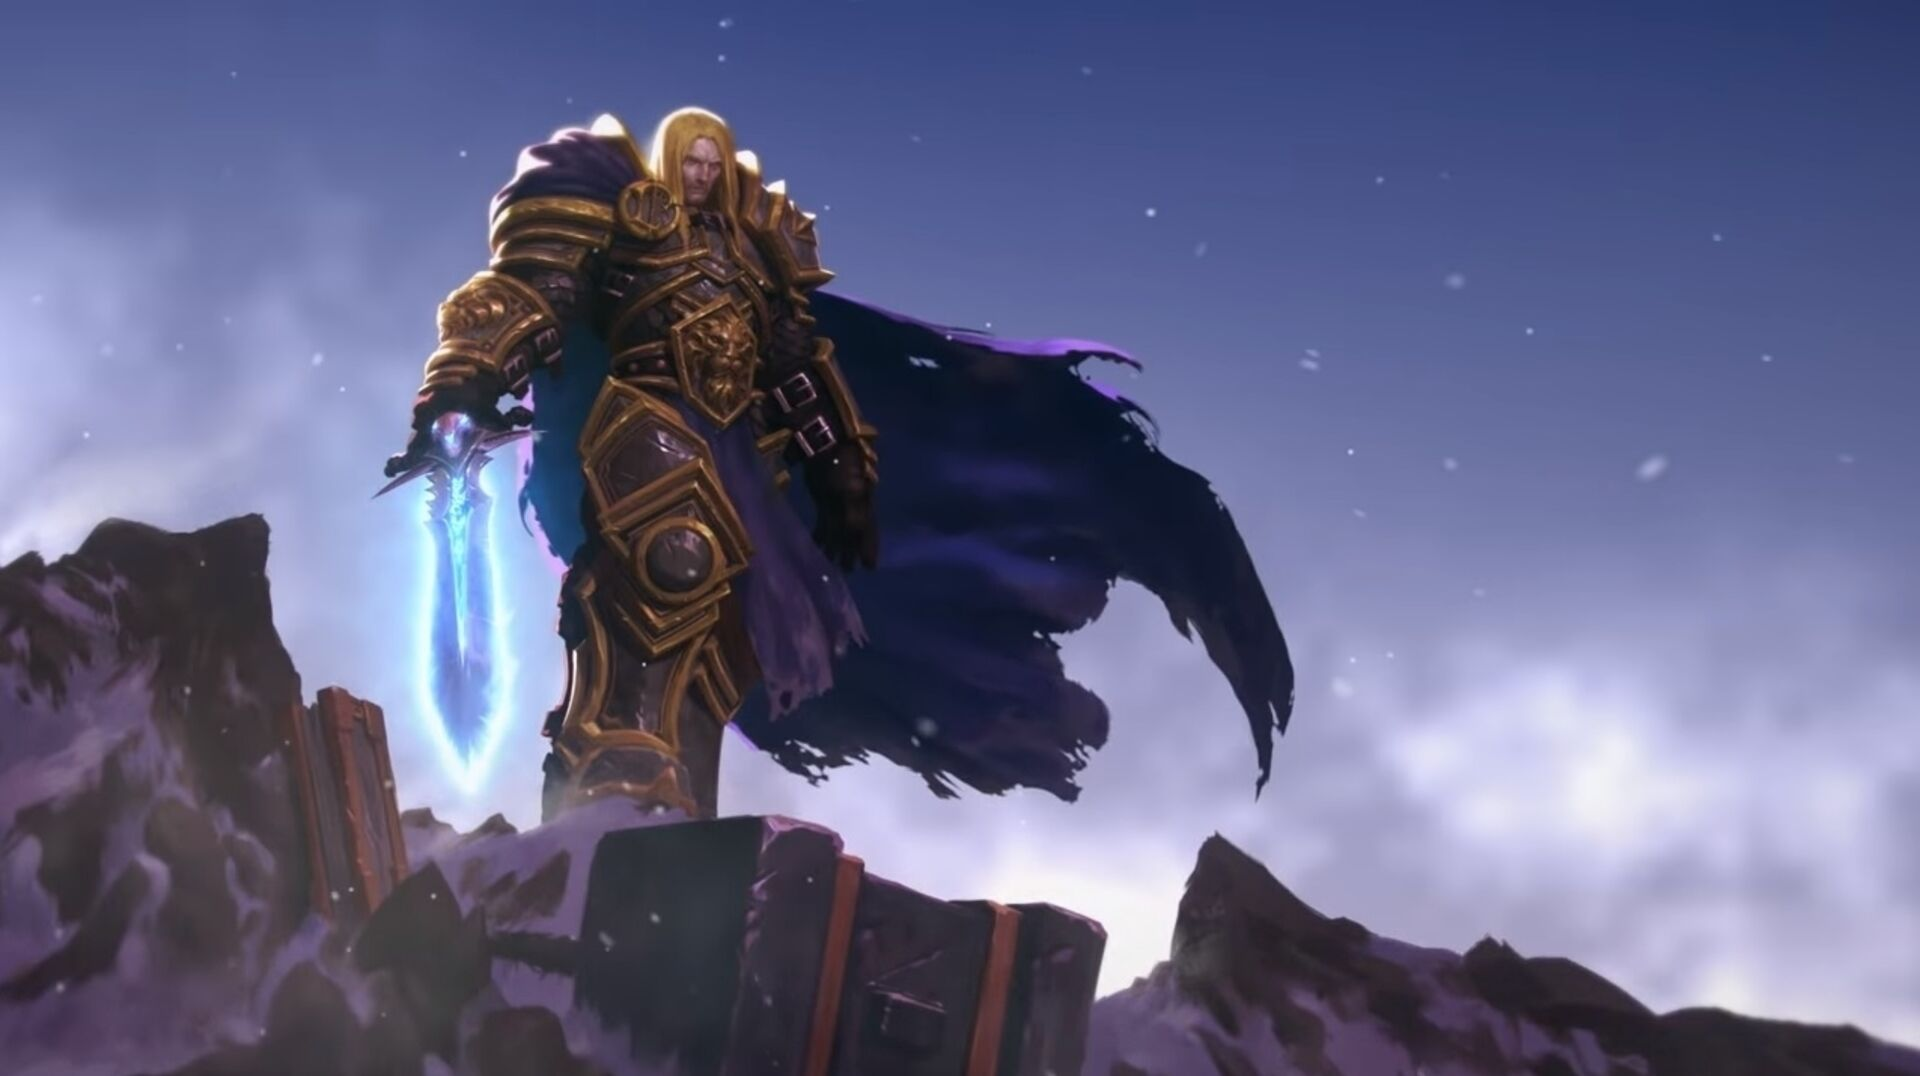 Warcraft 3 Reforged Houses A Fantastic Rts But Blizzard Has